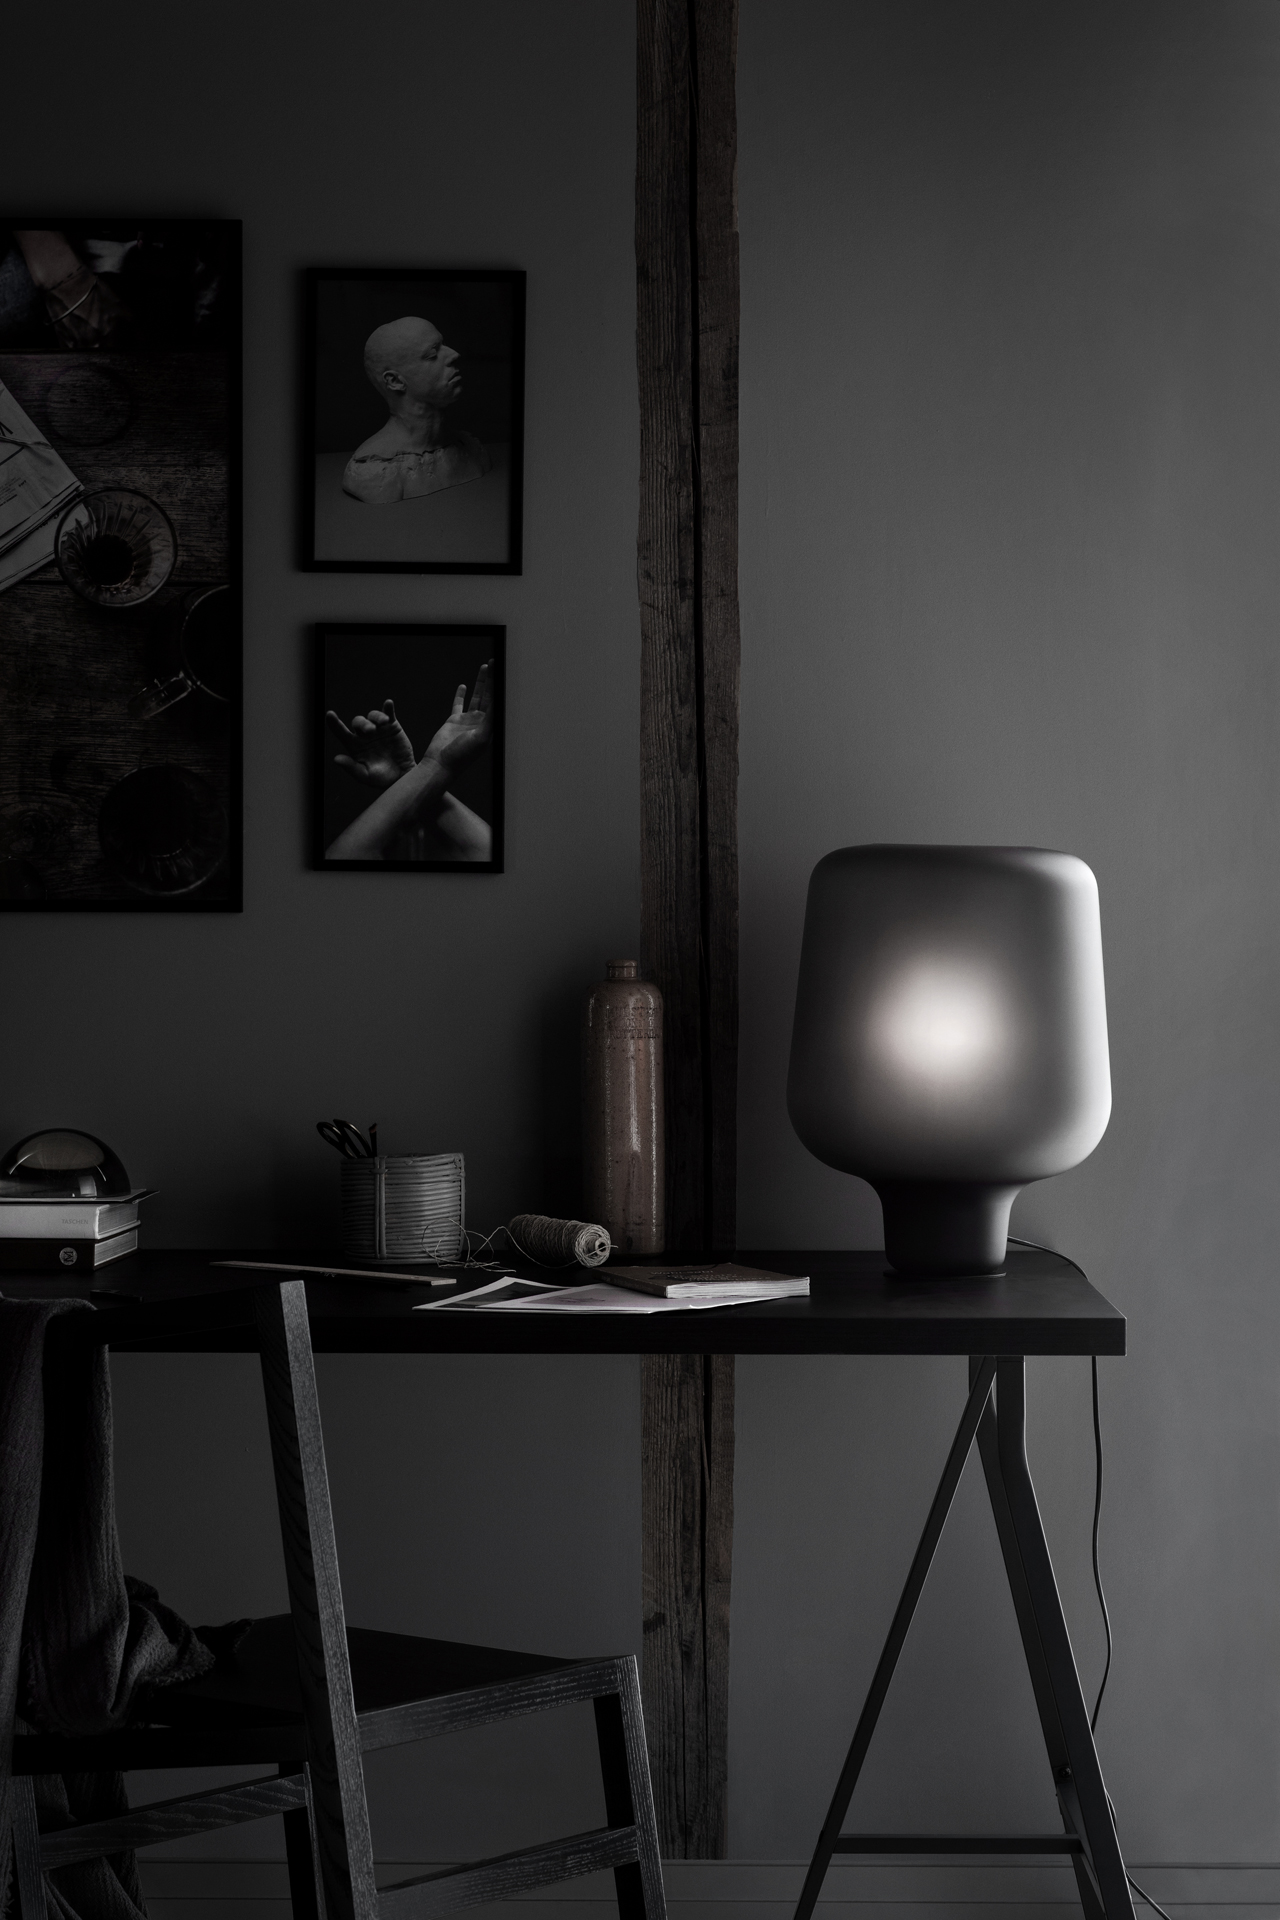 Northern Lighting Releases 5 New Lights for Spring 2017